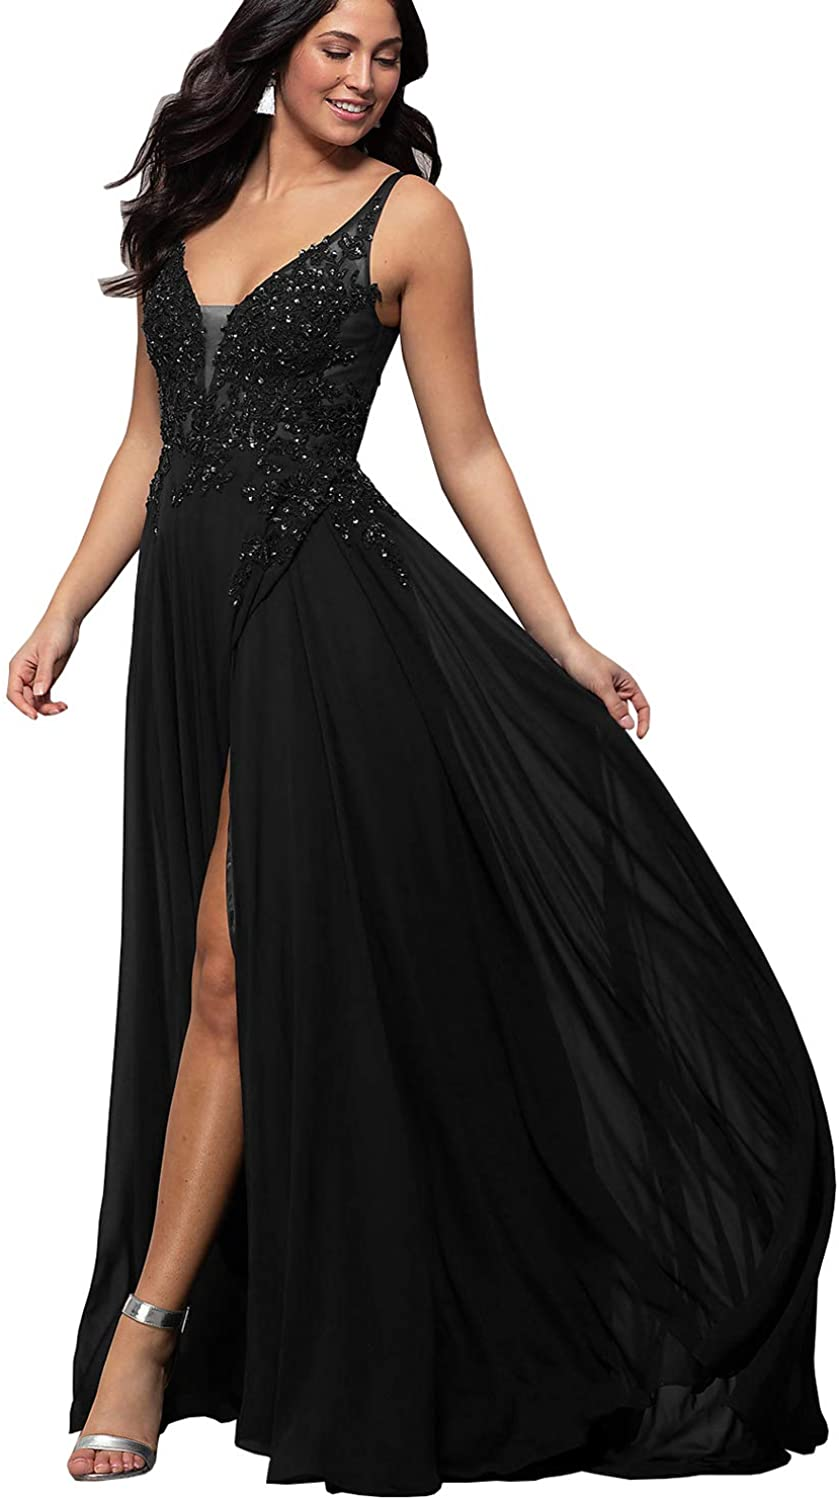 Womens See Through Lace Appliqued Bodice Prom Dress A-line High Slit Formal Evening Party Gown